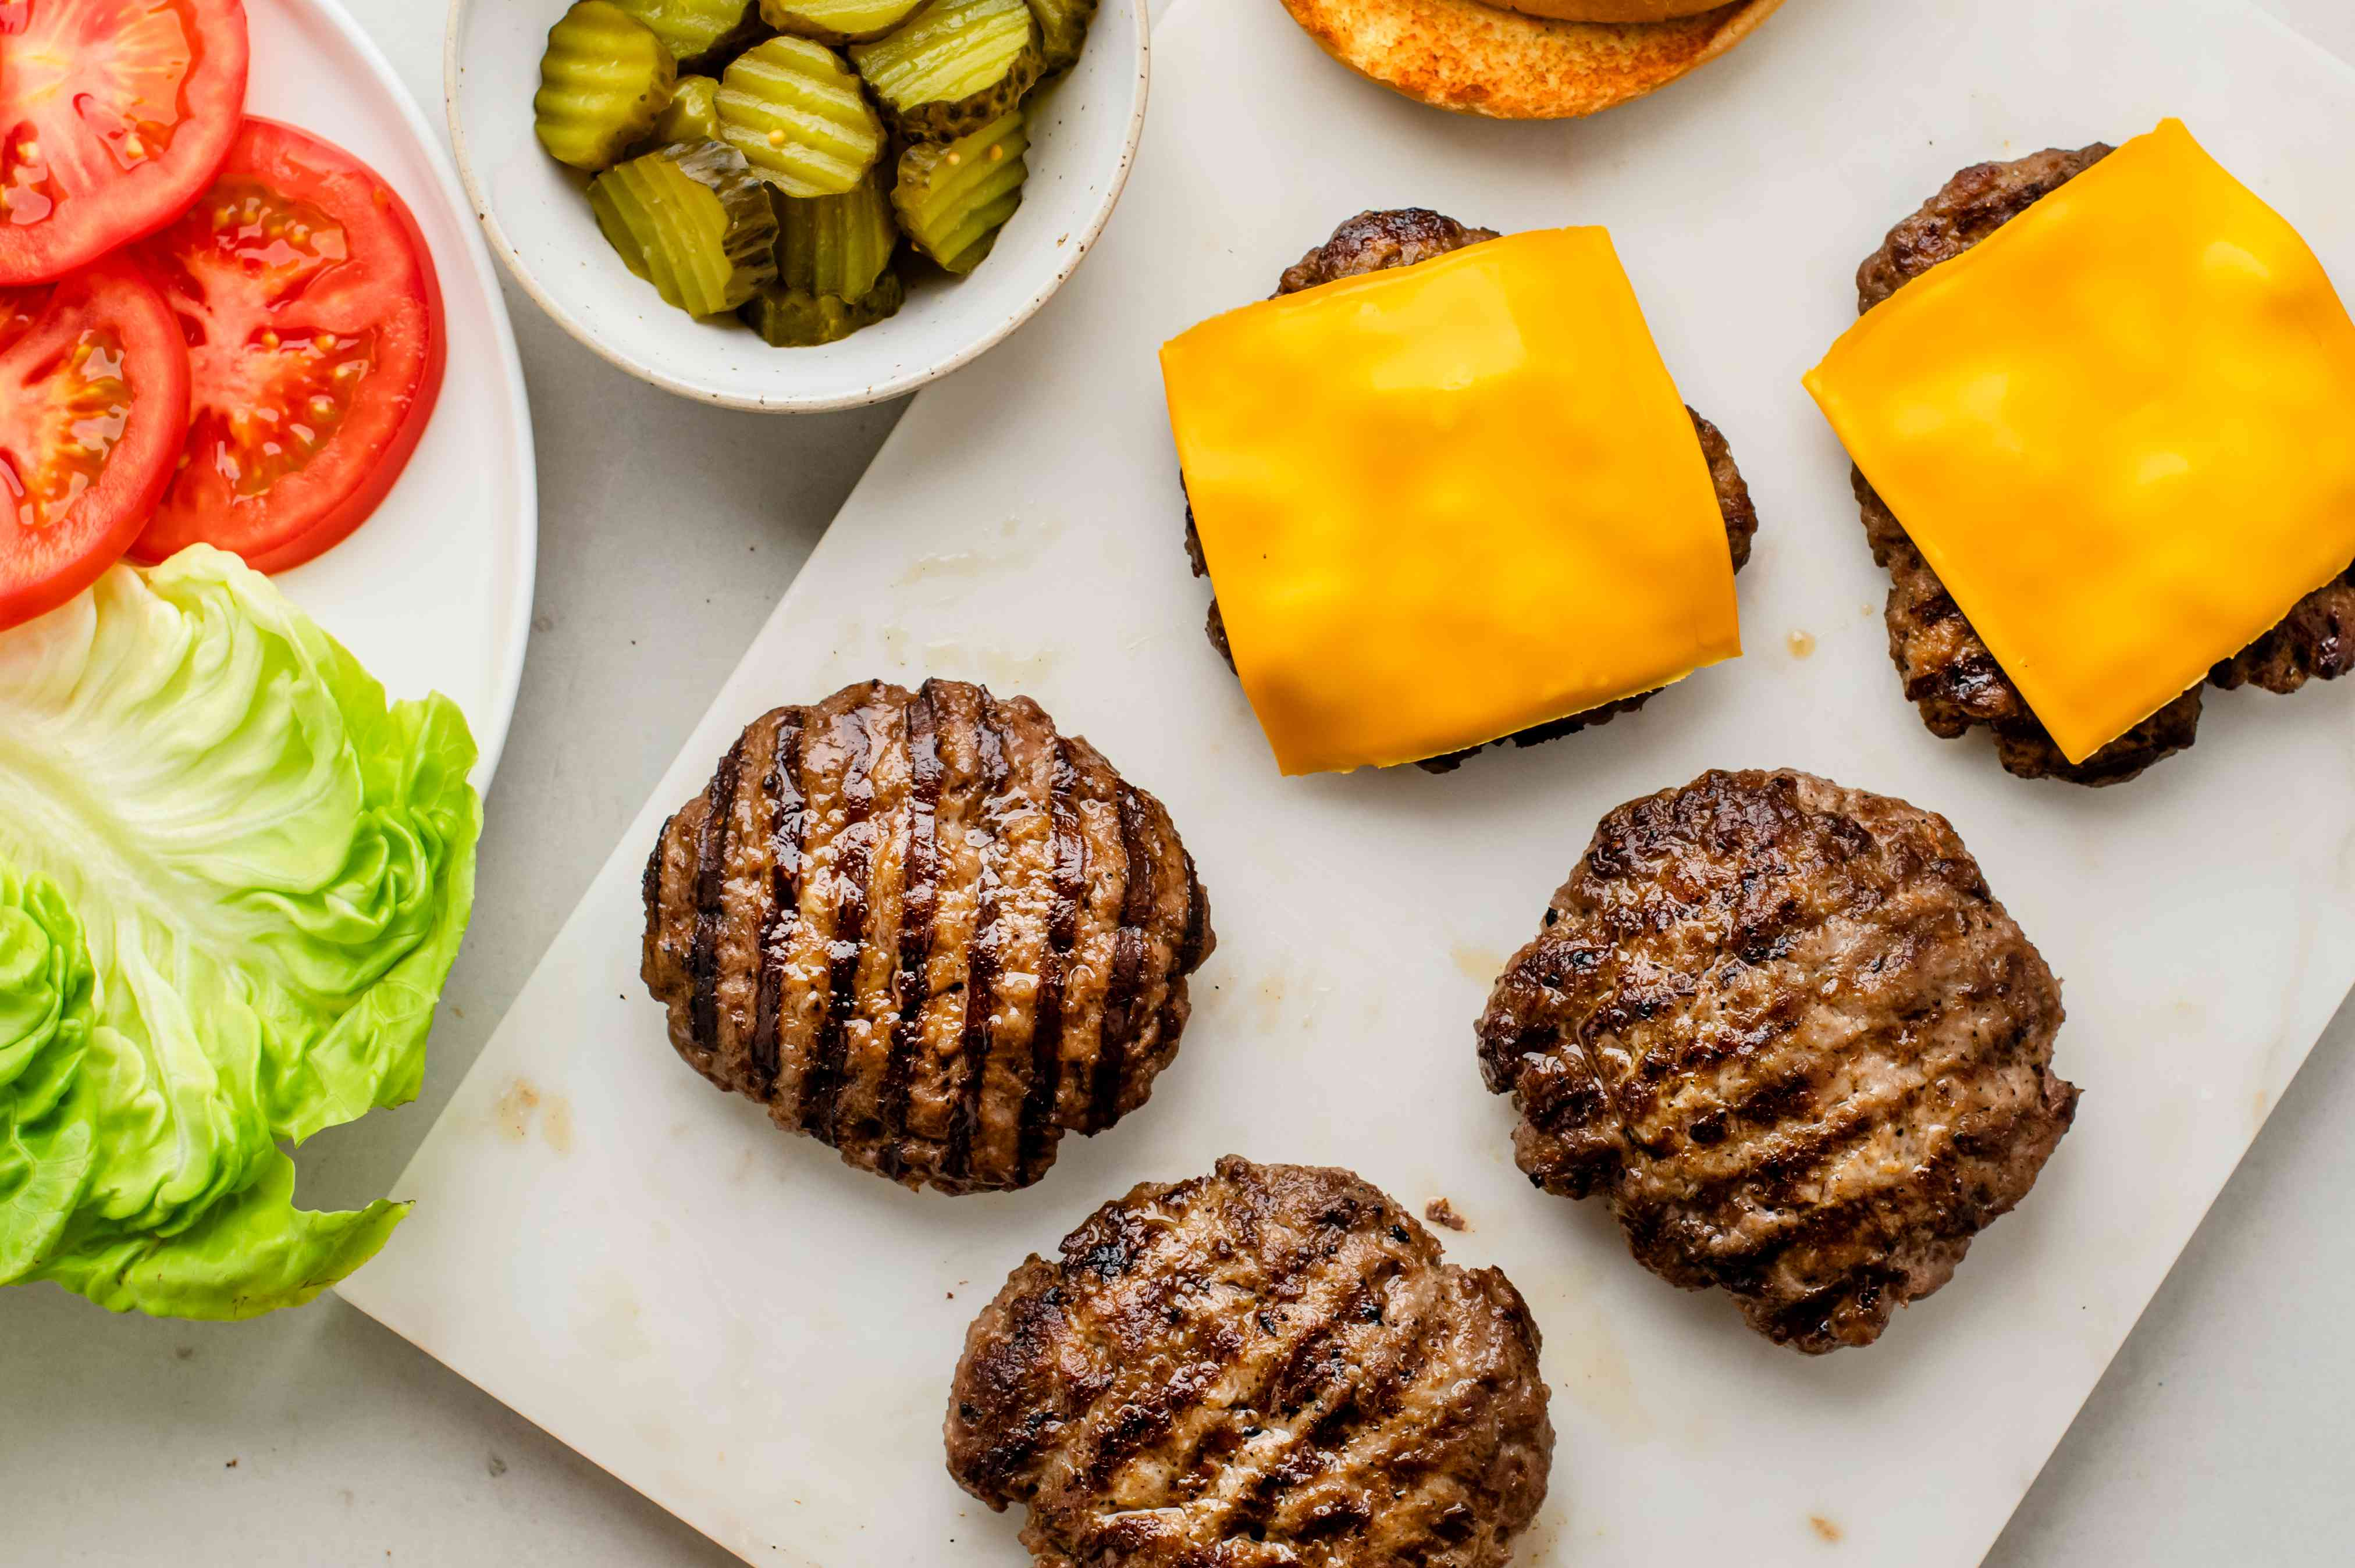 Serve the oven-baked burgers with condiments